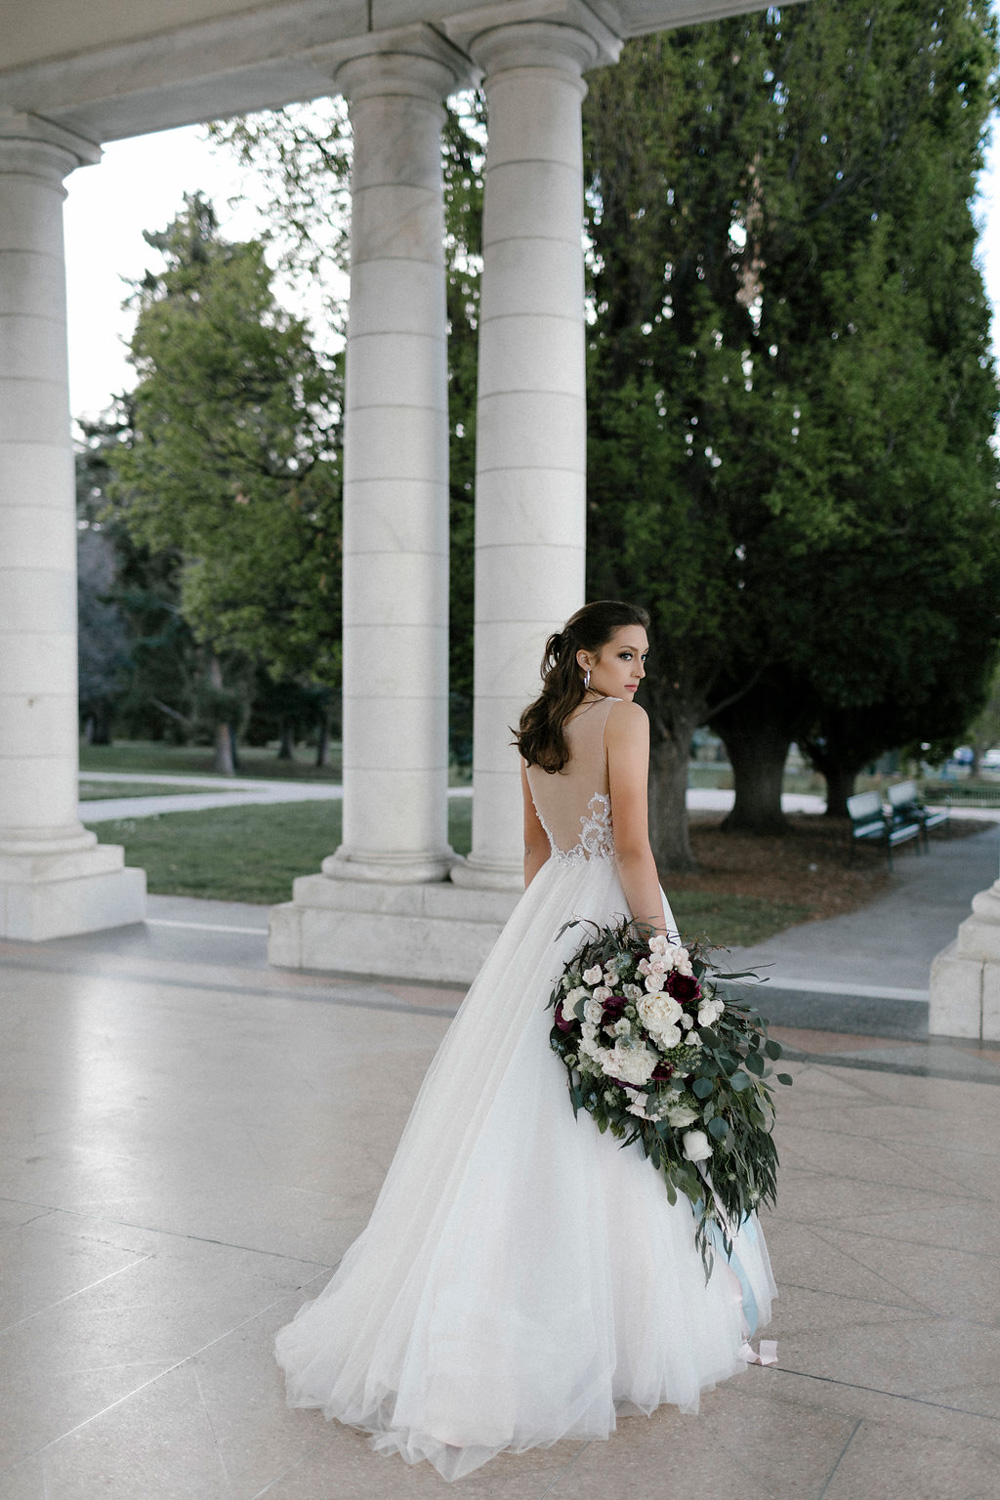 Bride with large over-sized cascade bouquet - fresh flowers